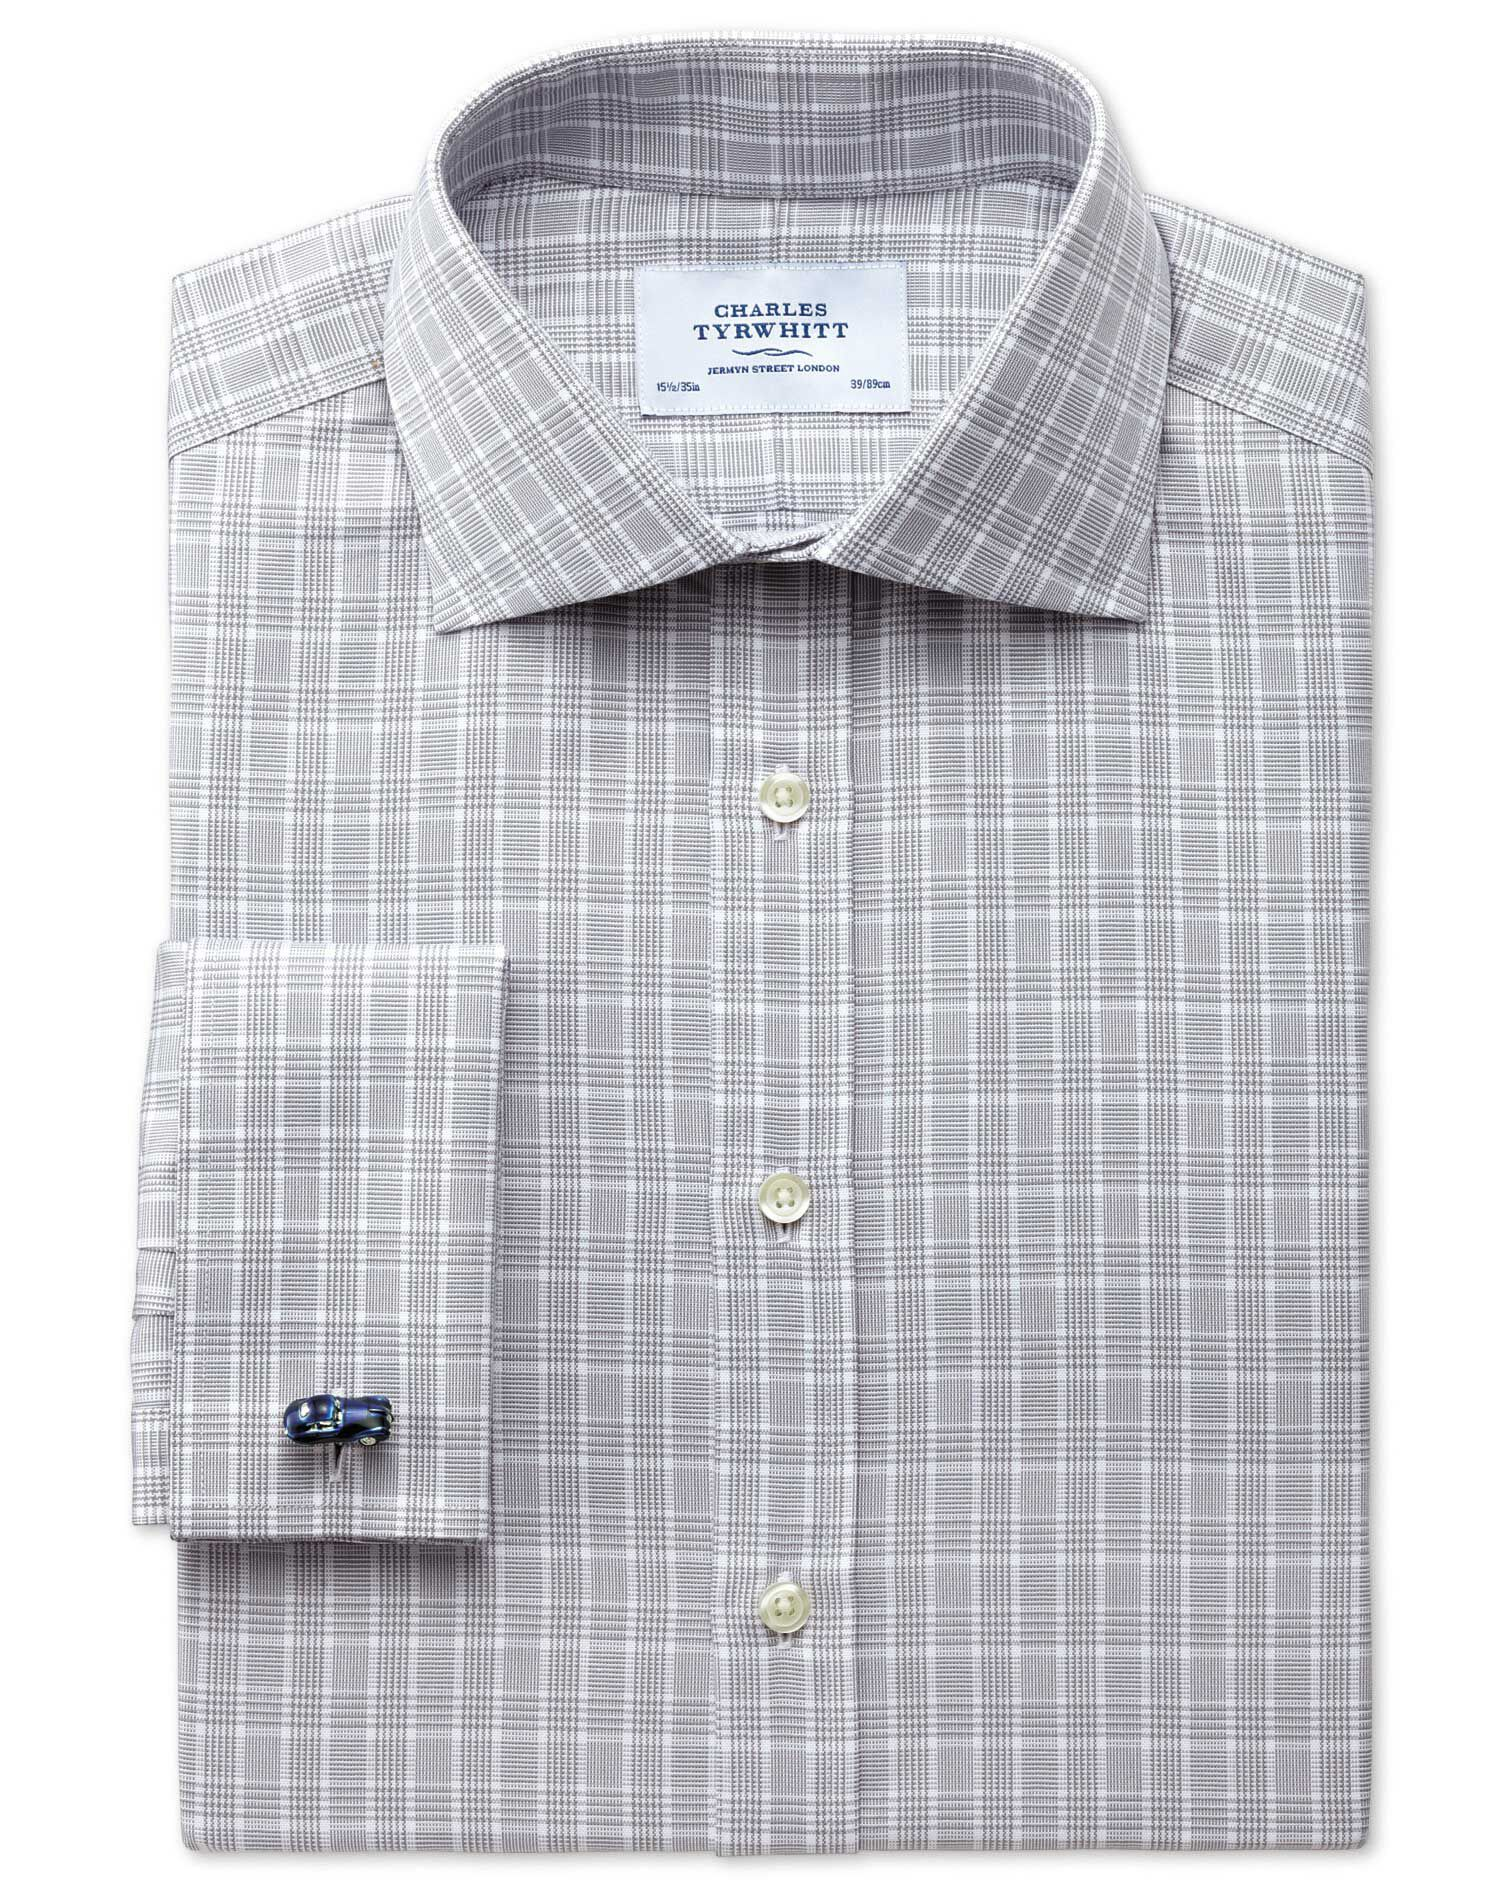 Extra Slim Fit Prince Of Wales Silver Cotton Formal Shirt Double Cuff Size 16/32 by Charles Tyrwhitt